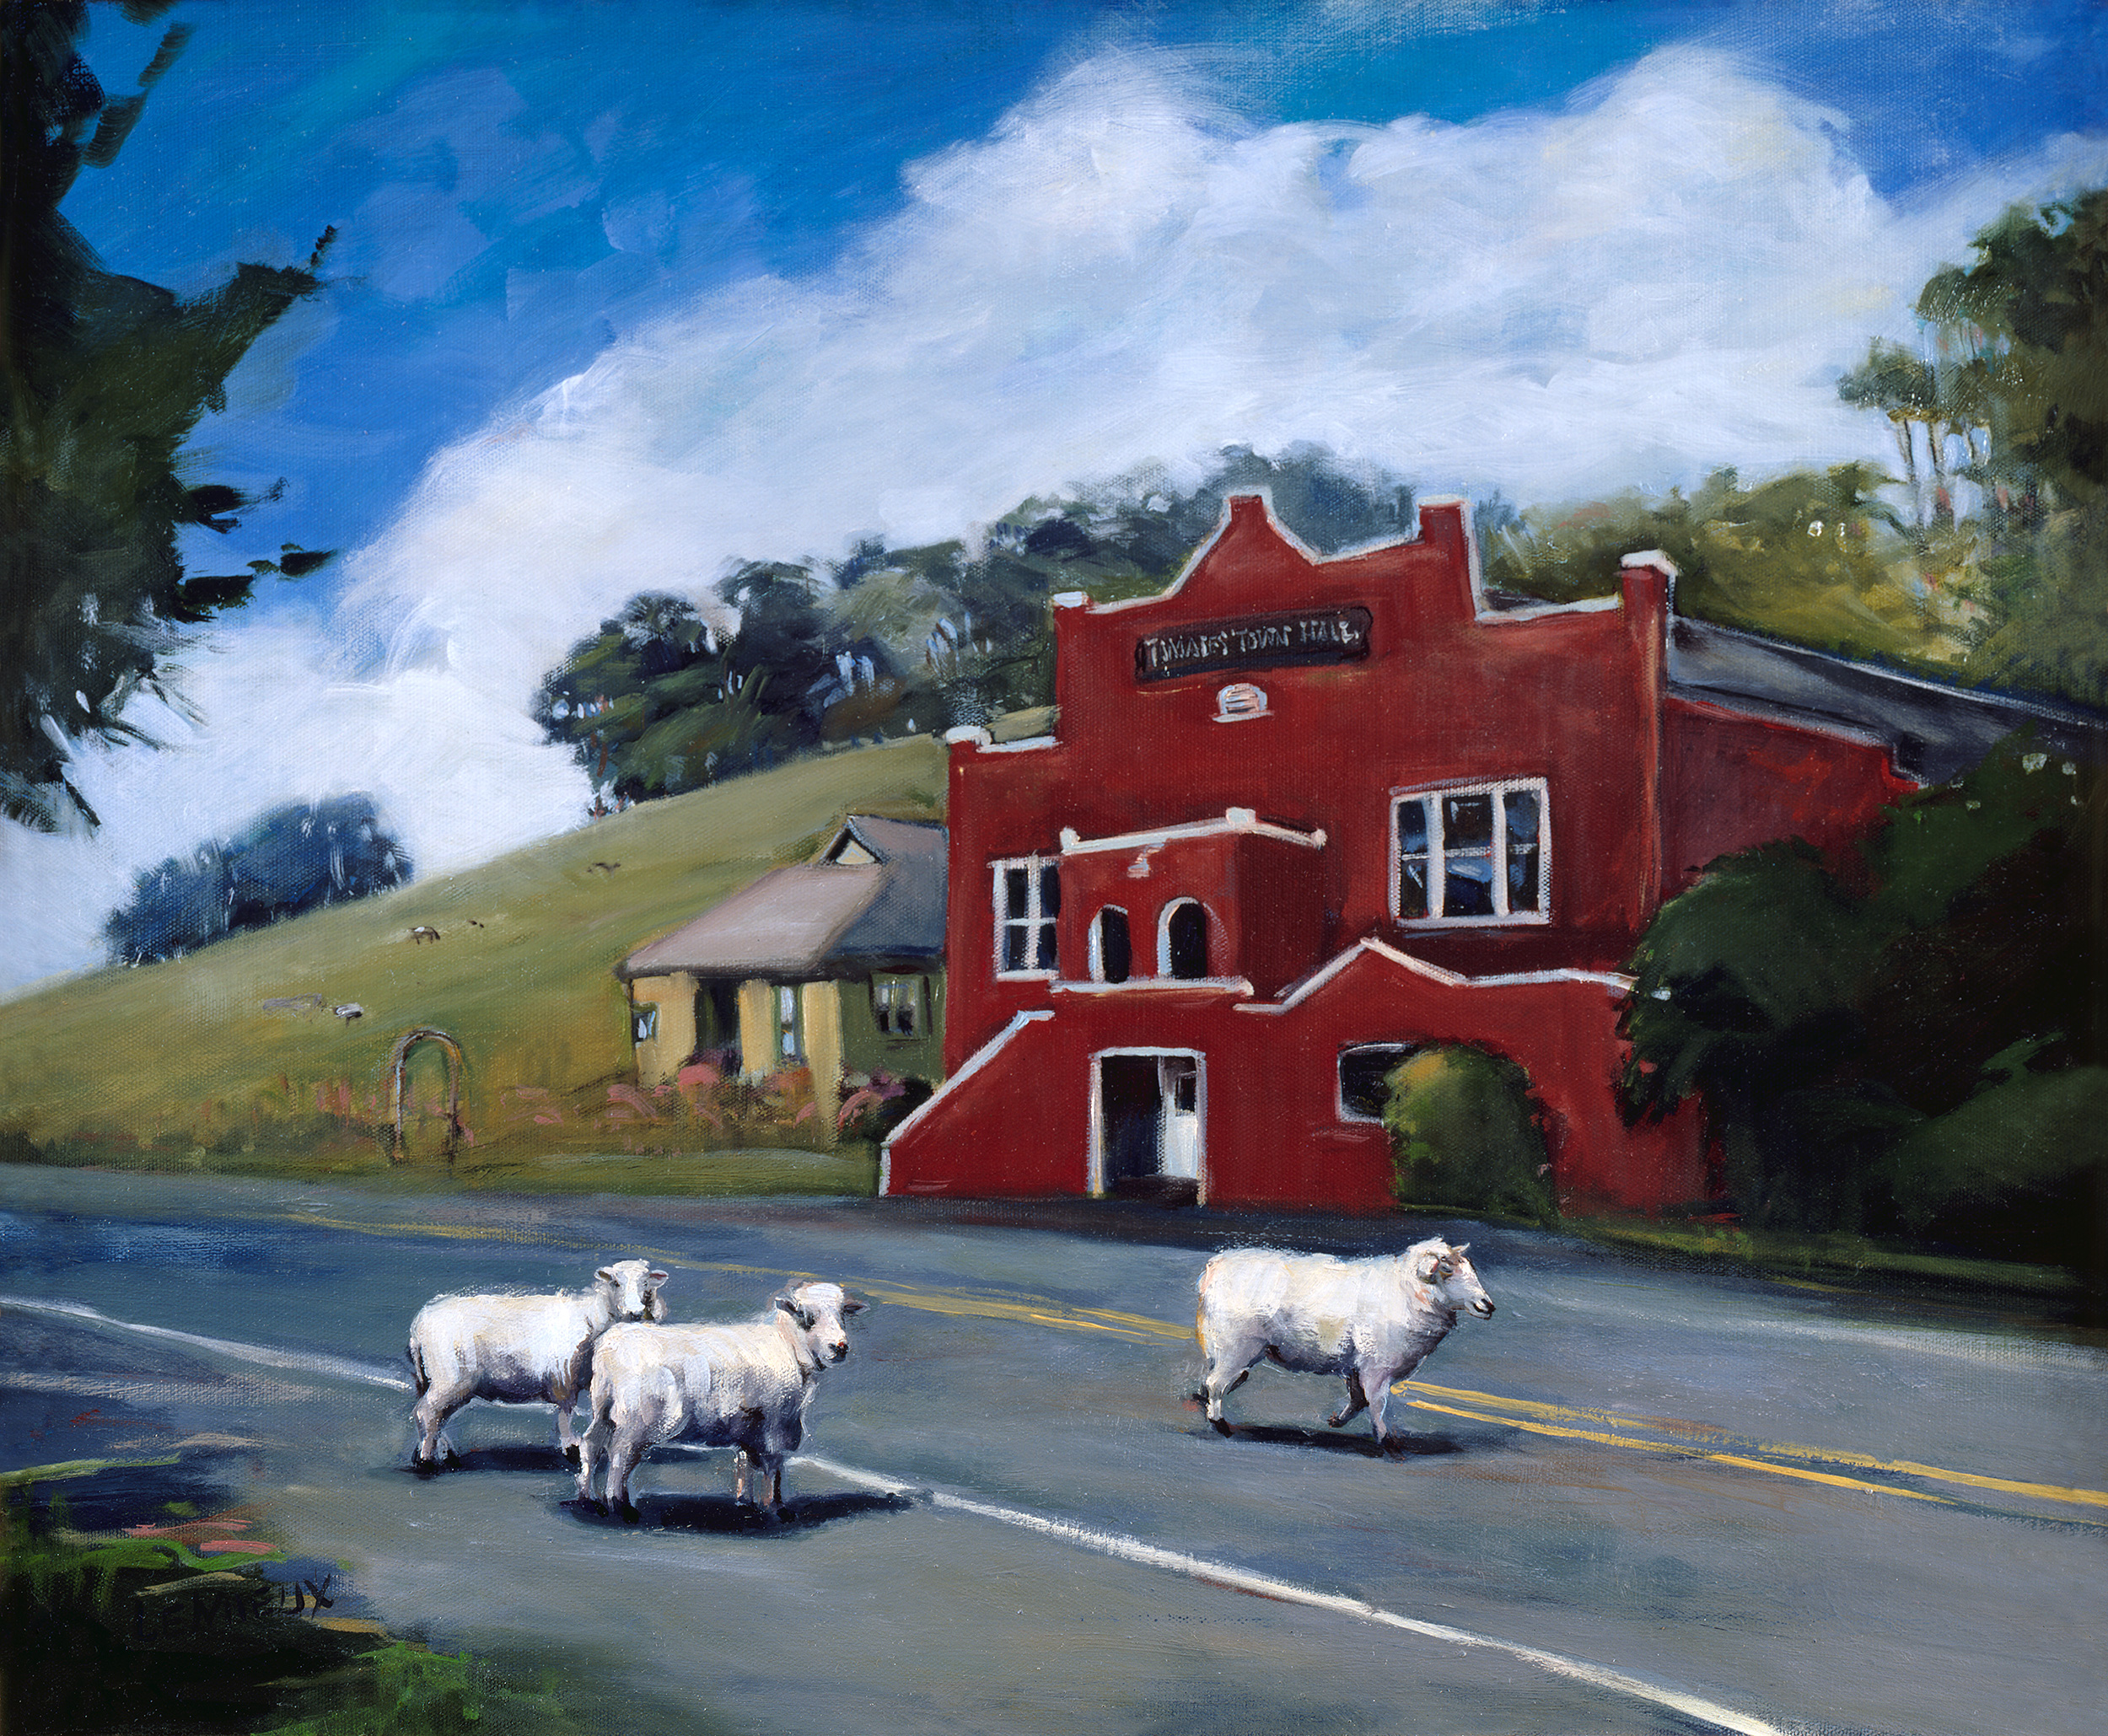 Kathryn LeMieux,  Tomales Town Hall with Sheep , 2005  This iconic painting of the Tomales Town Hall was donated by local artist Kathryn LeMieux to help kickstart a new era of renovations in 2005. As we approach our 150th anniversary, these efforts have shifted into high gear. Please join Kathryn and other generous donors and  support the Hall's rejuvenation . Contribute what you can!